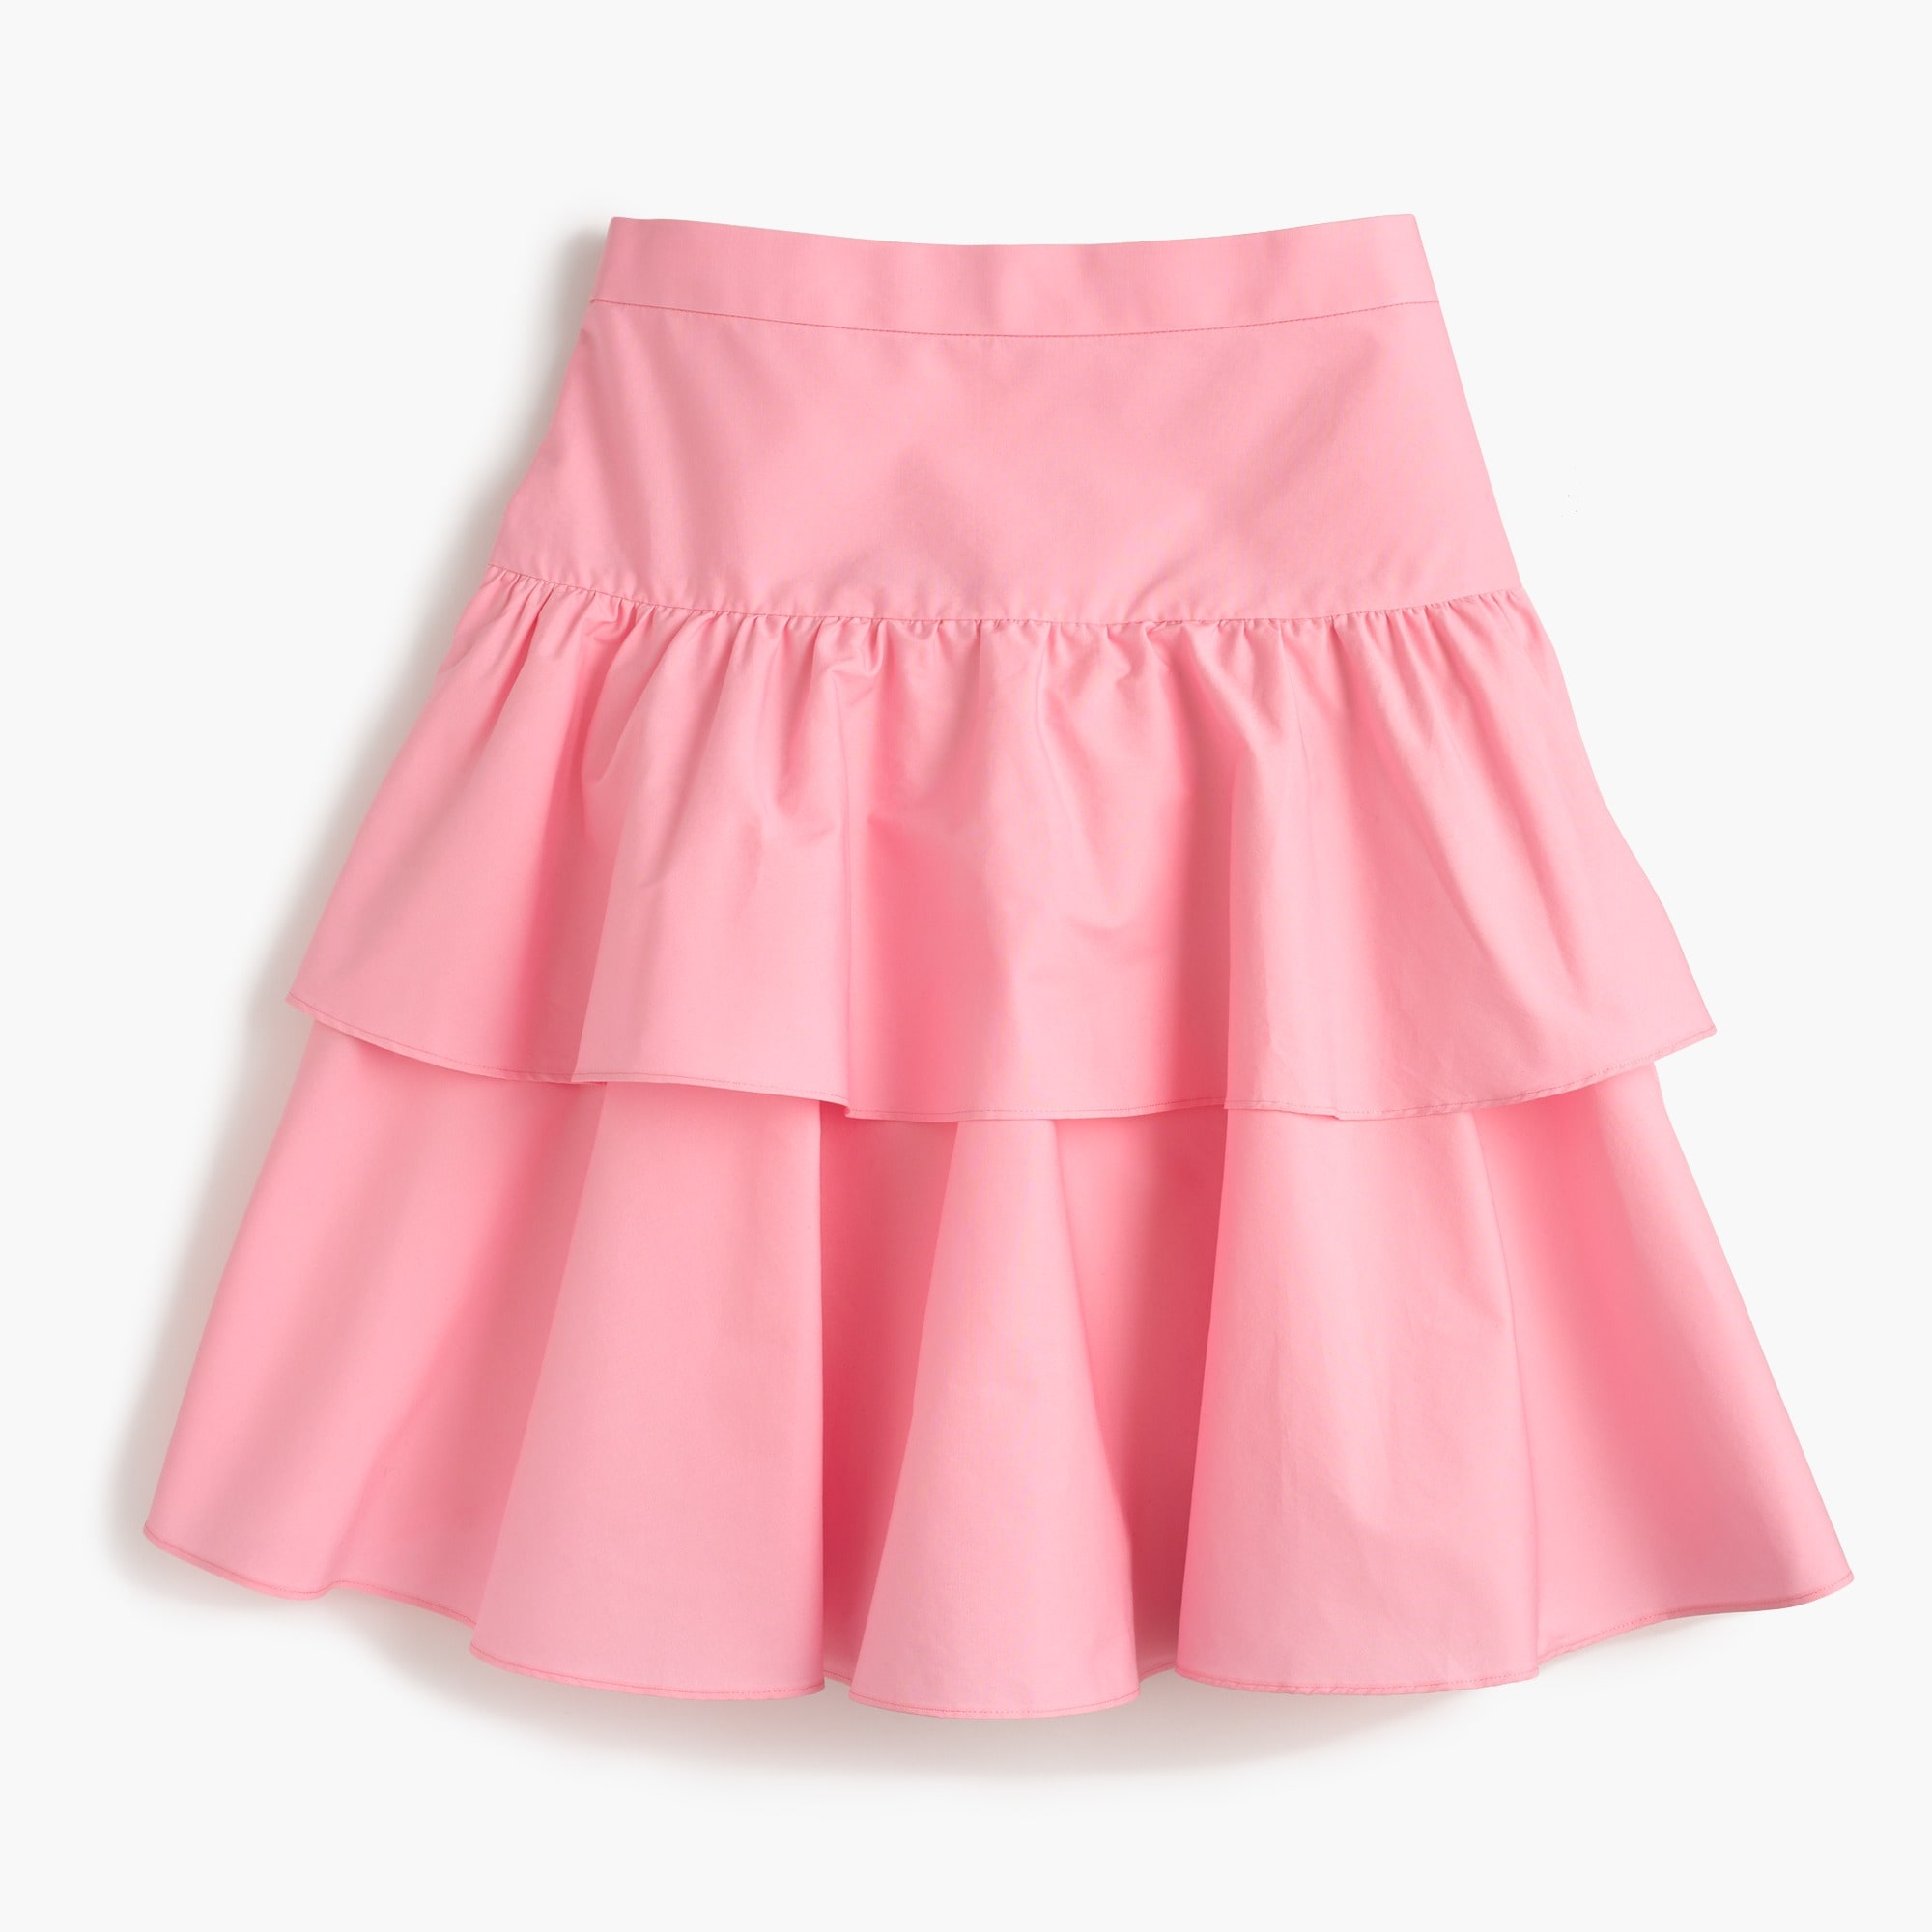 petite tiered ruffle skirt : women mini